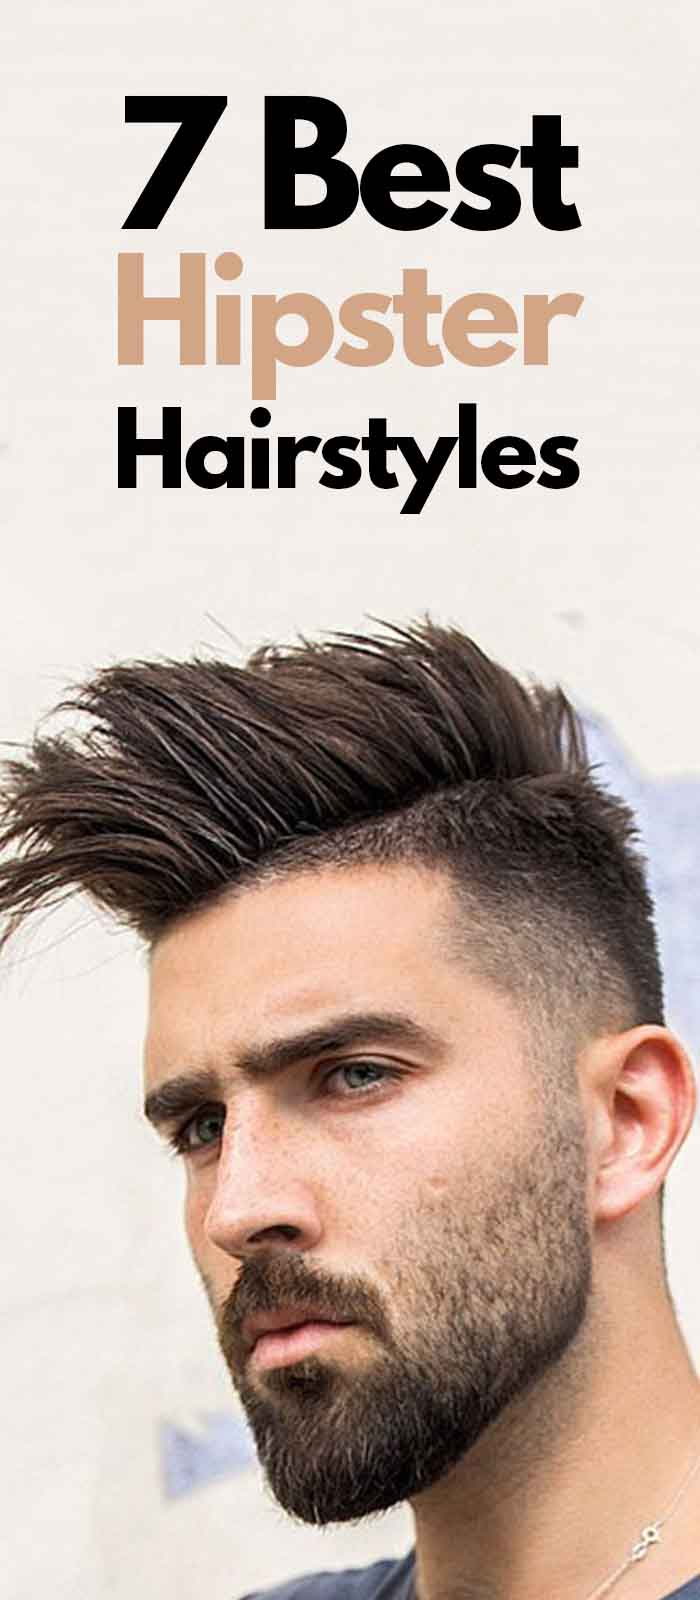 Hipster Hairstyles For Men 2019 - Mens Hairstyle 2018